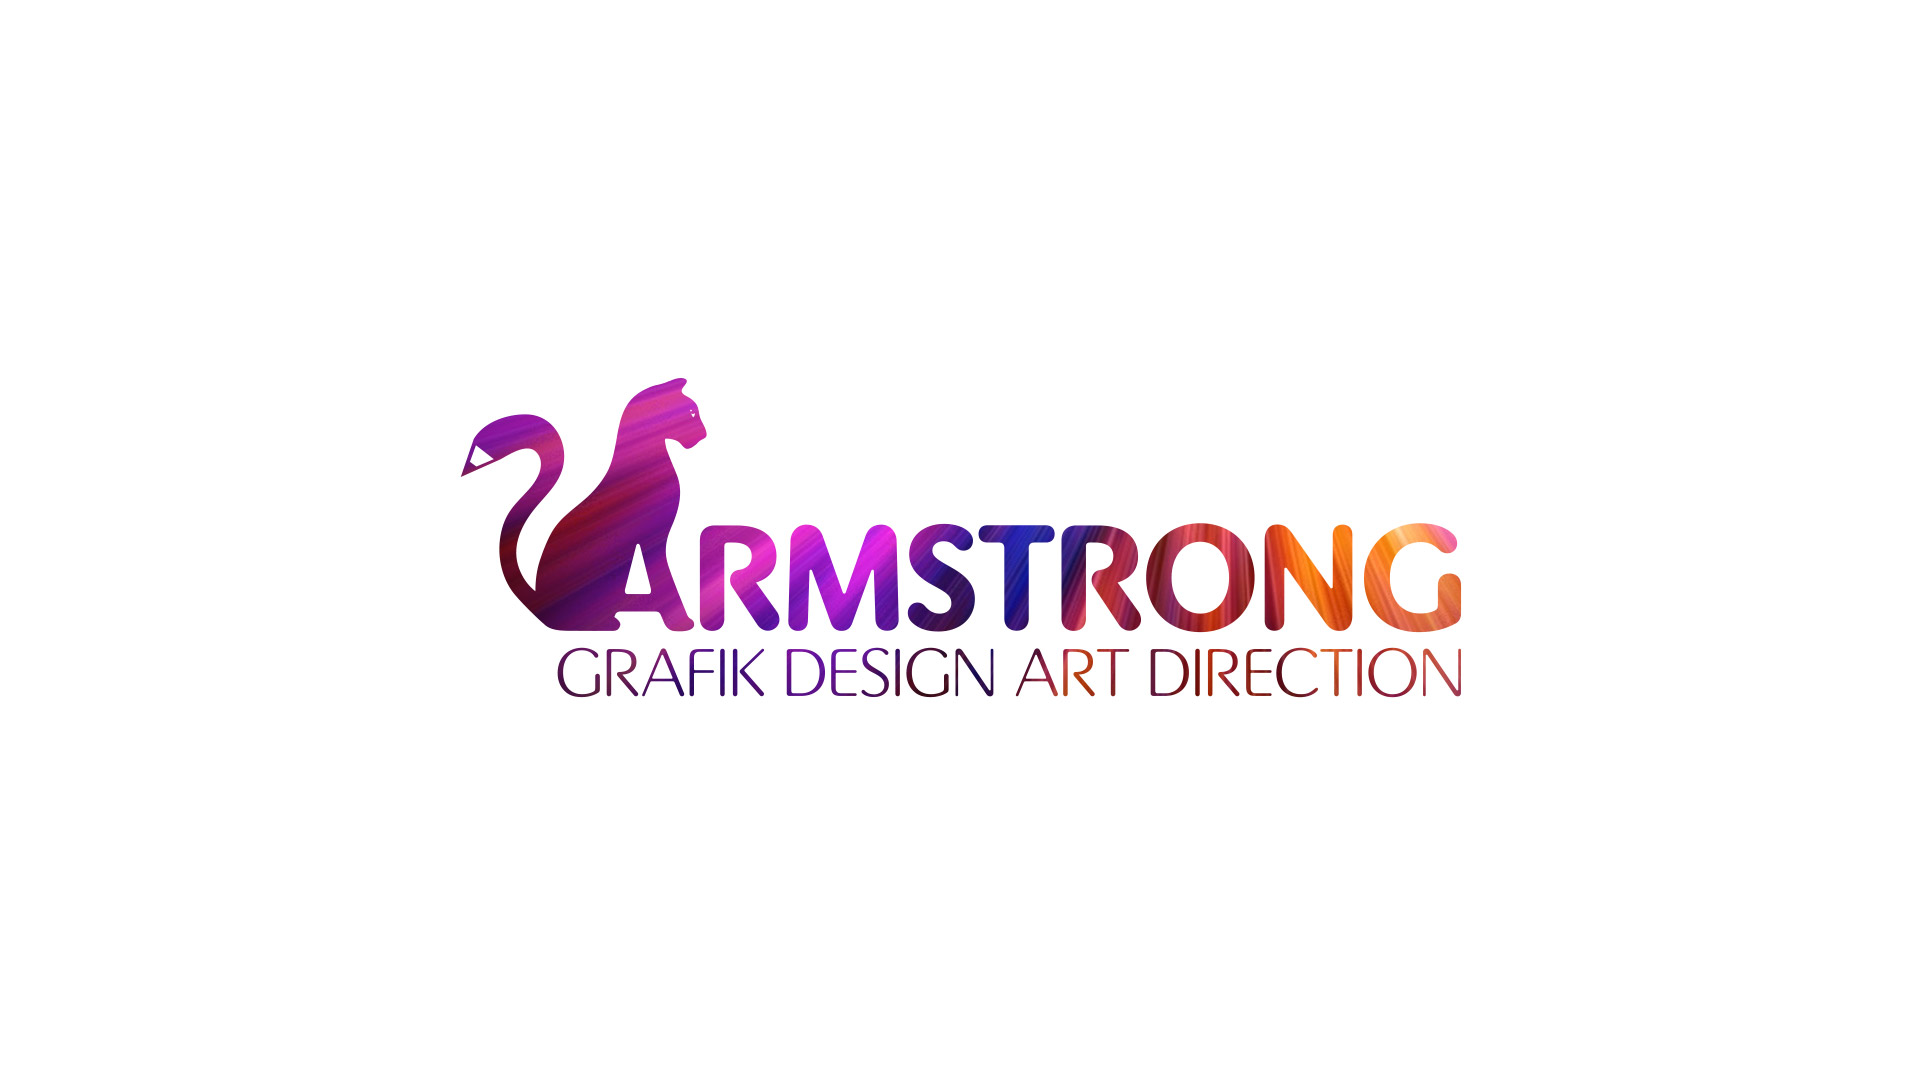 Armstrong Grafik Design • Art Direction München